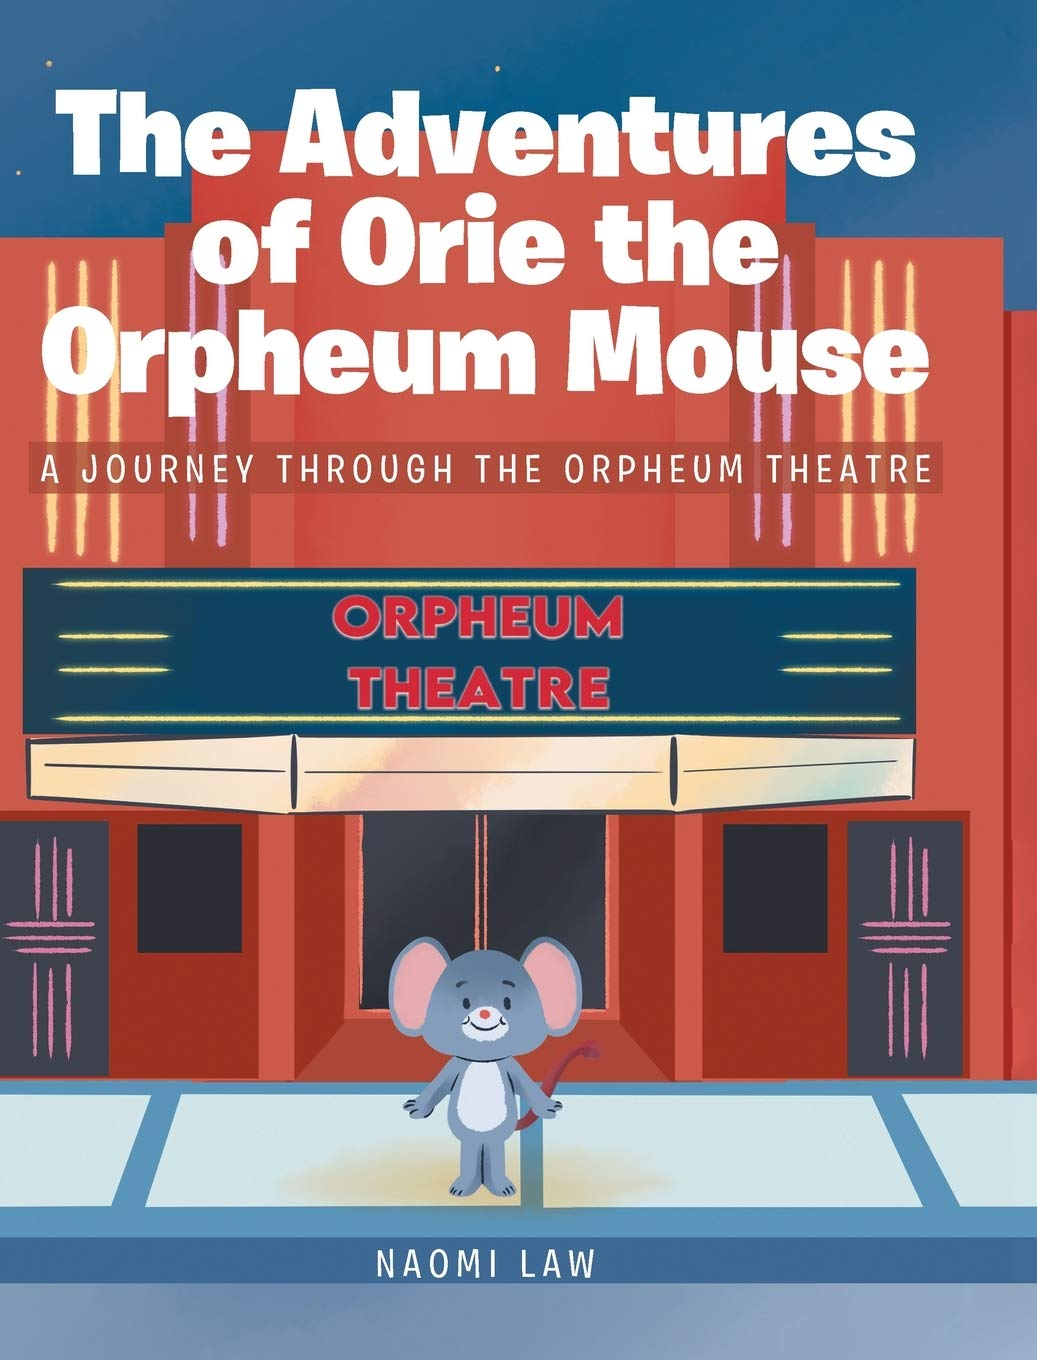 The Adventures of Orie the Orpheum Mouse: A Journey Through The Orpheum Theatre by Naomi Law